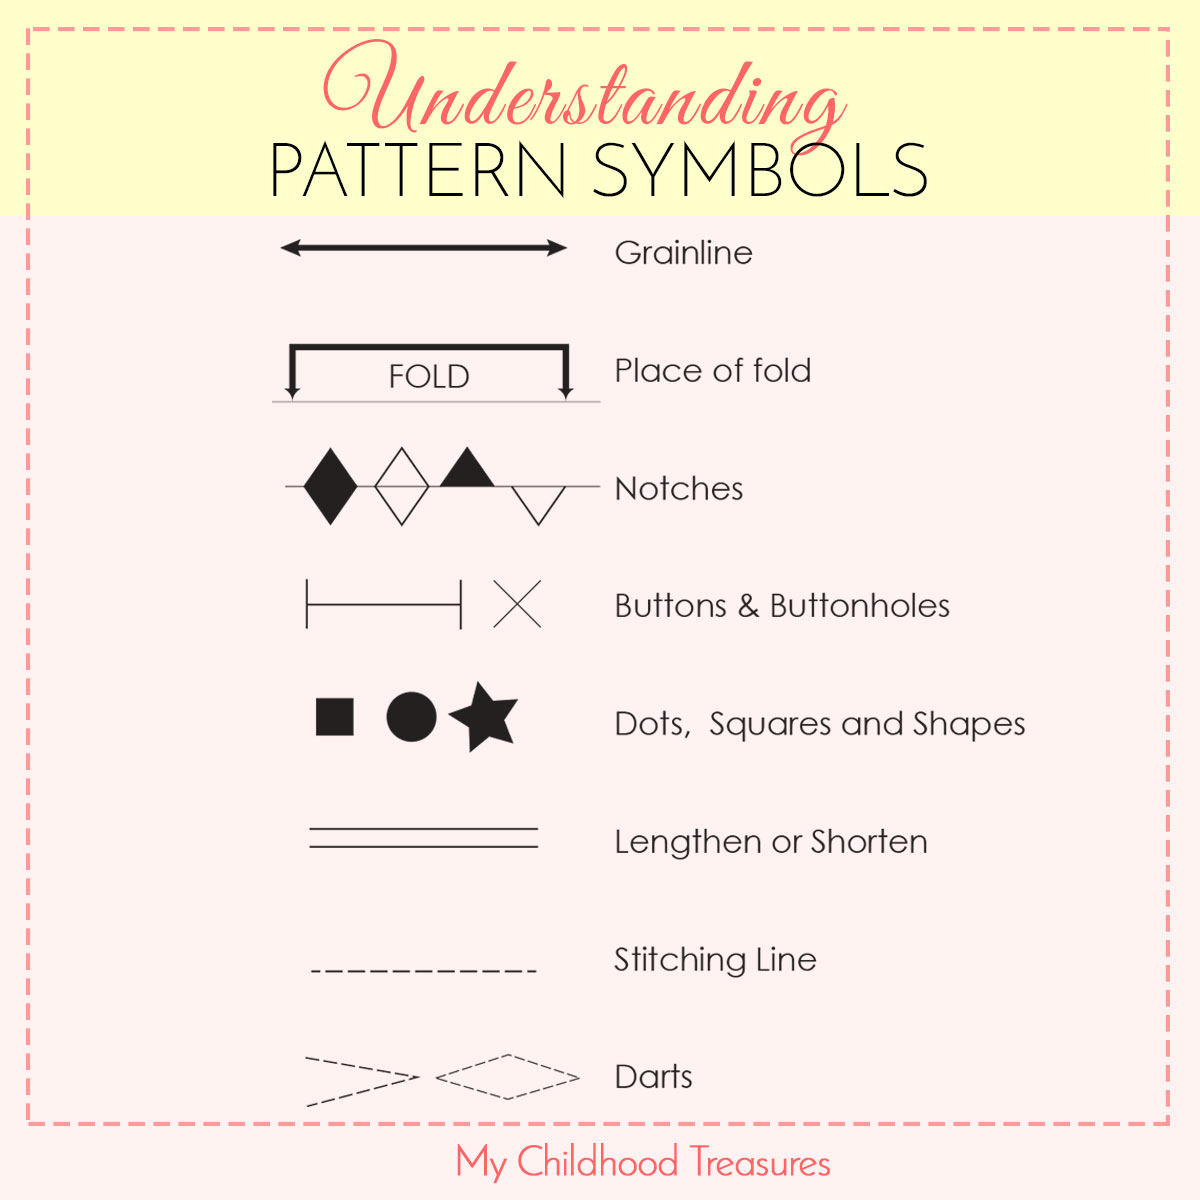 Sewing pattern symbols guide how to read sewing patterns treasurie sewing pattern symbols buycottarizona Image collections